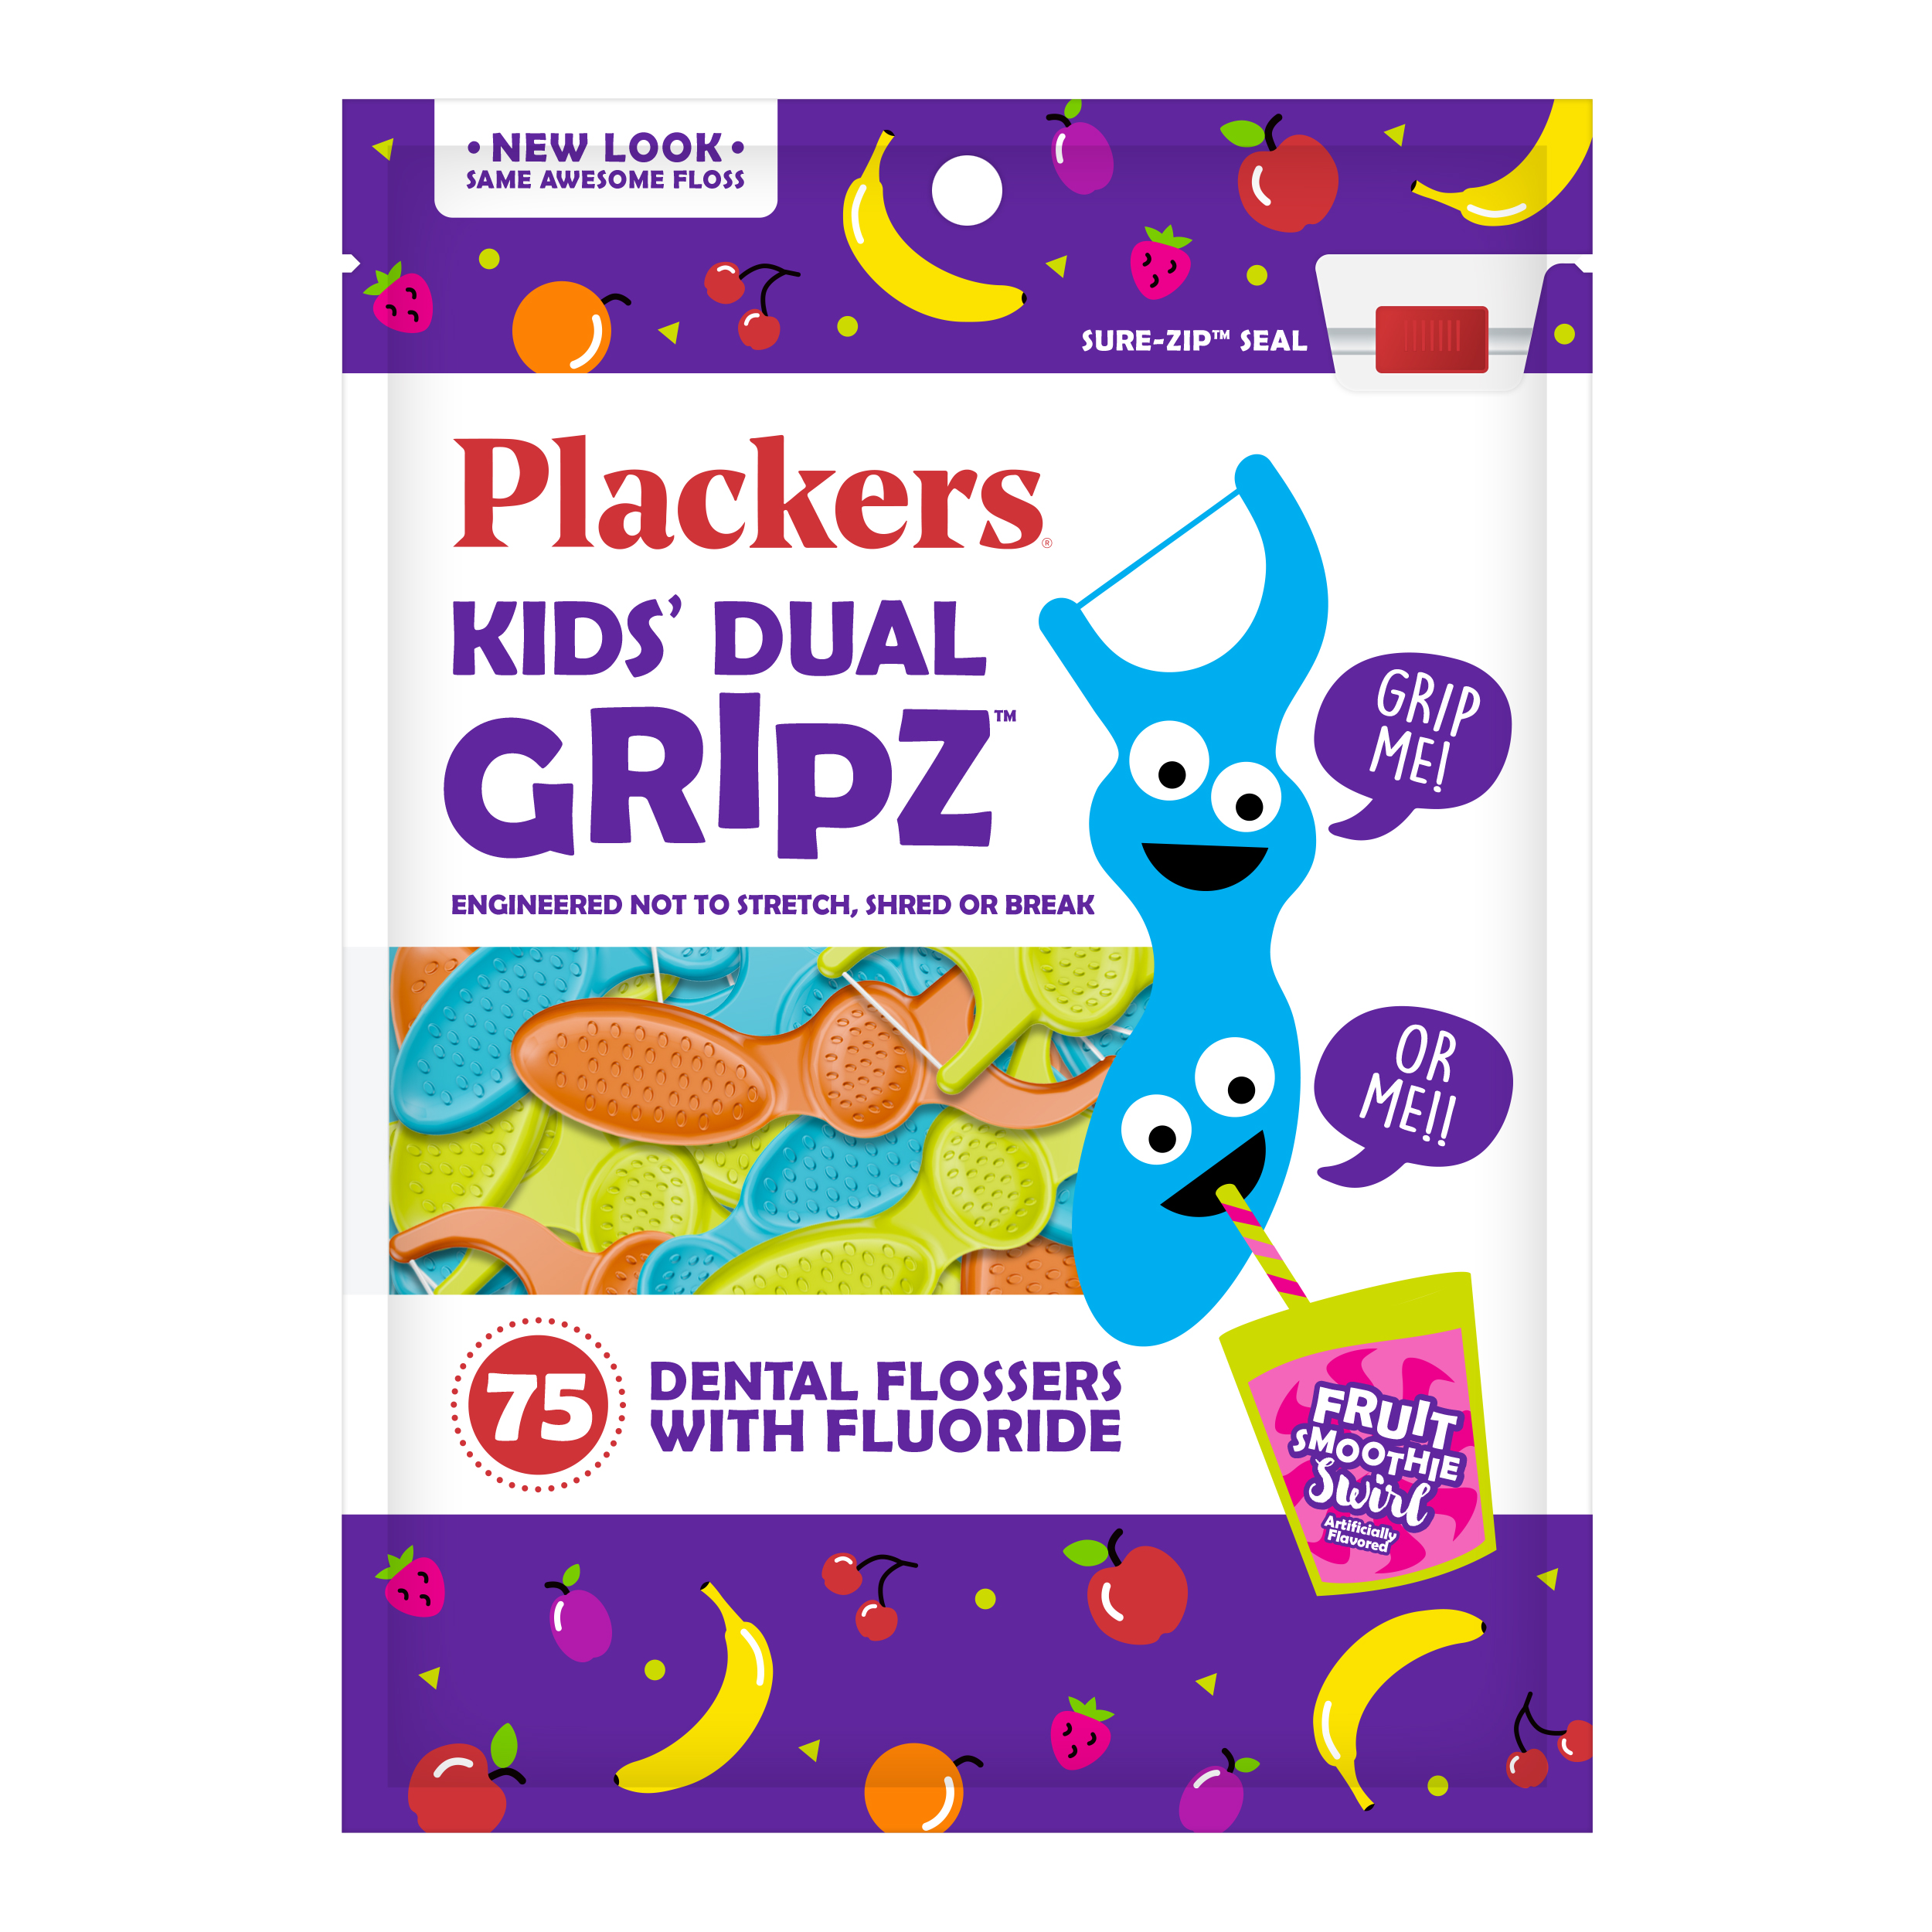 (4 Pack) Plackers Kids Dental Floss Picks, Fruit Smoothie Swirl with  Fluoride, Dual Grip - 75 Count